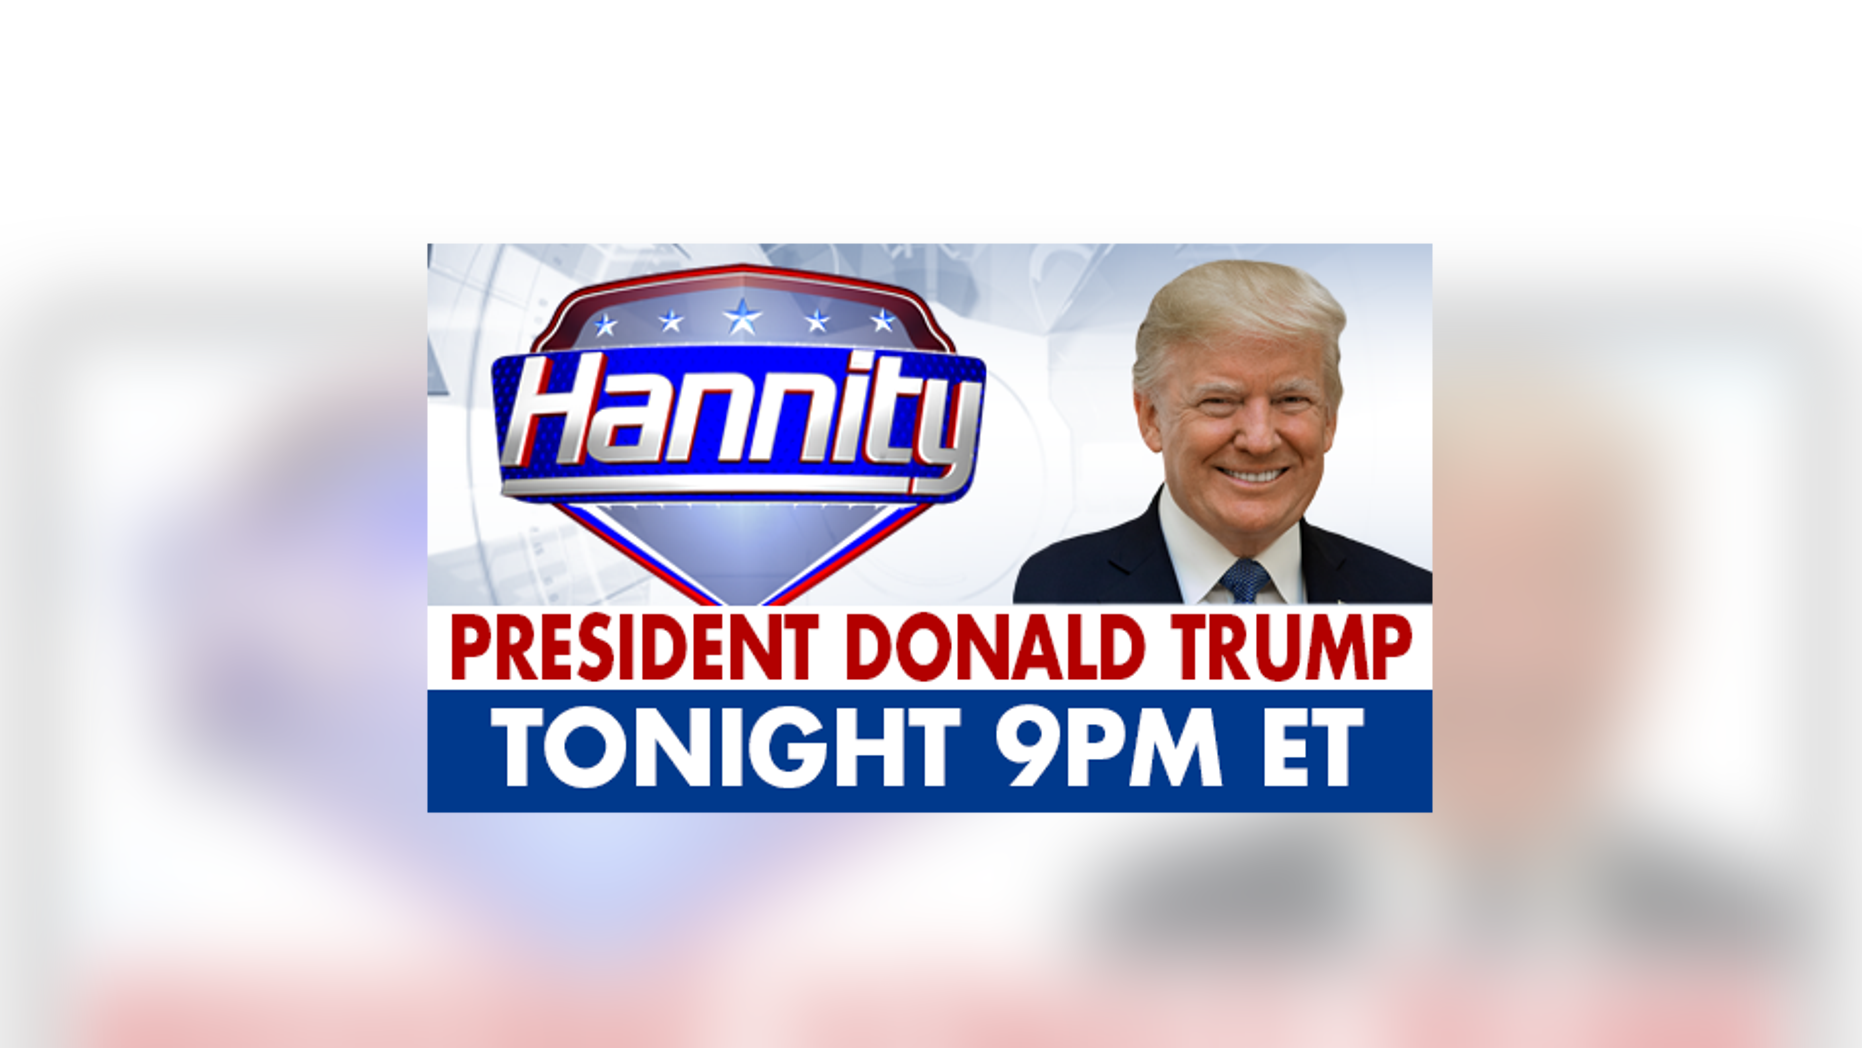 Westlake Legal Group BUG_PROMO_HANNITY_PRES_TRUMP_TONIGHT_9PM Today on Fox News, June 19, 2019 fox-news/entertainment/media fox-news/entertainment fox news fnc/entertainment fnc c60ad90d-ce4b-598b-9f20-dc267b734c6e article